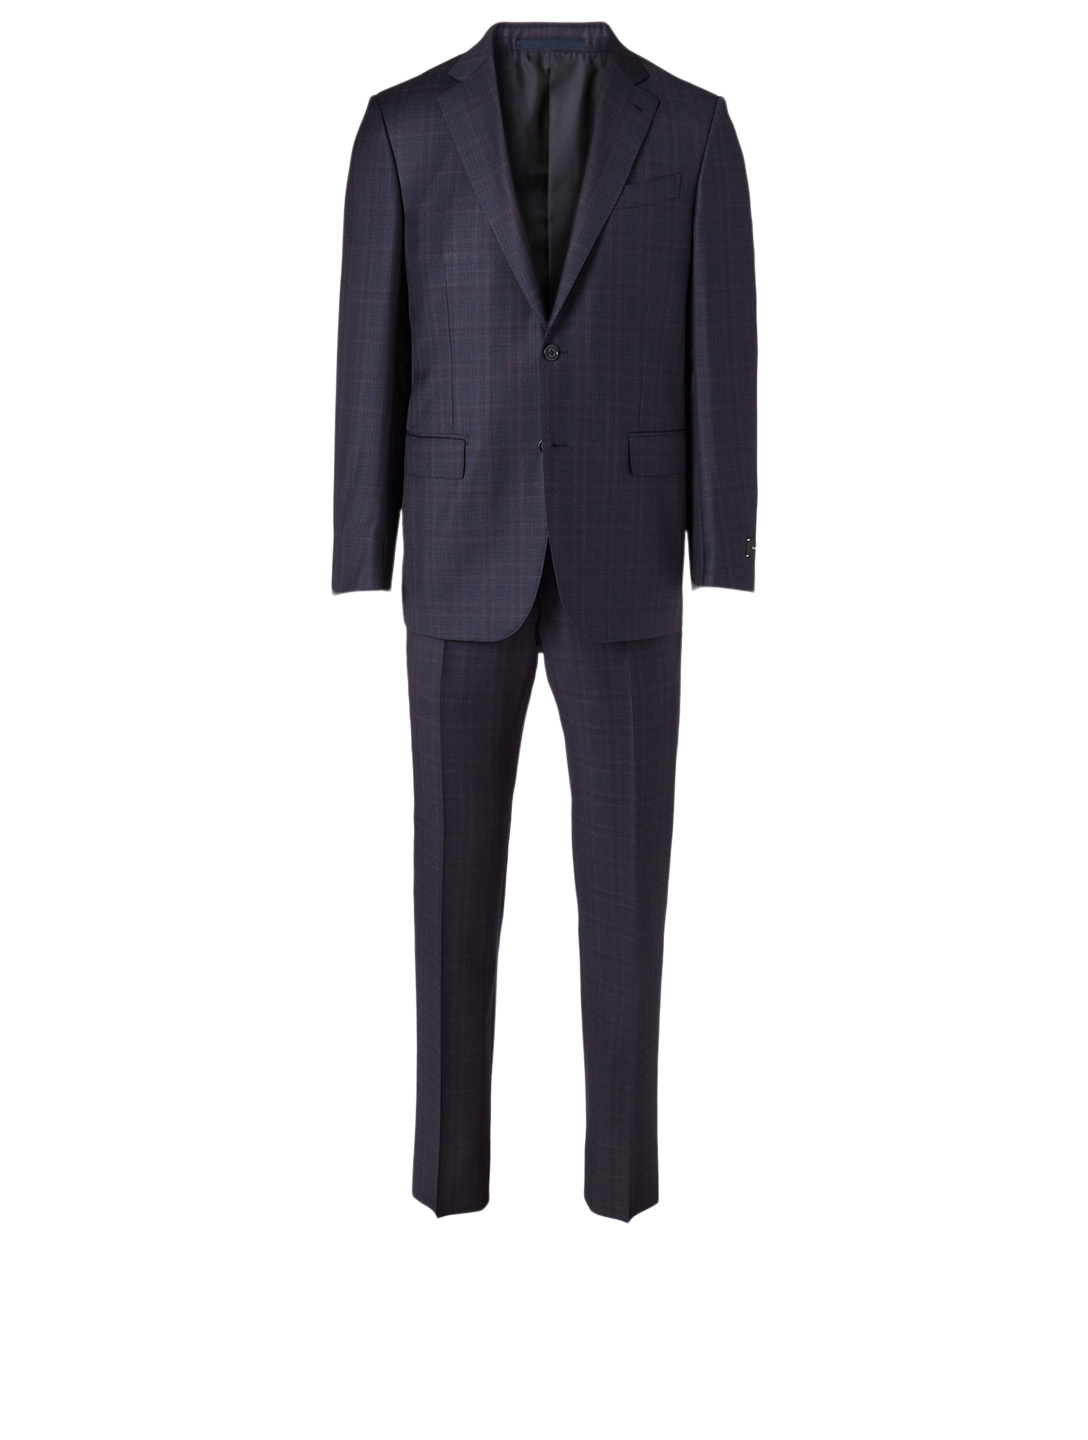 ERMENEGILDO ZEGNA Wool Two-Piece Suit In Check Print Men's Blue